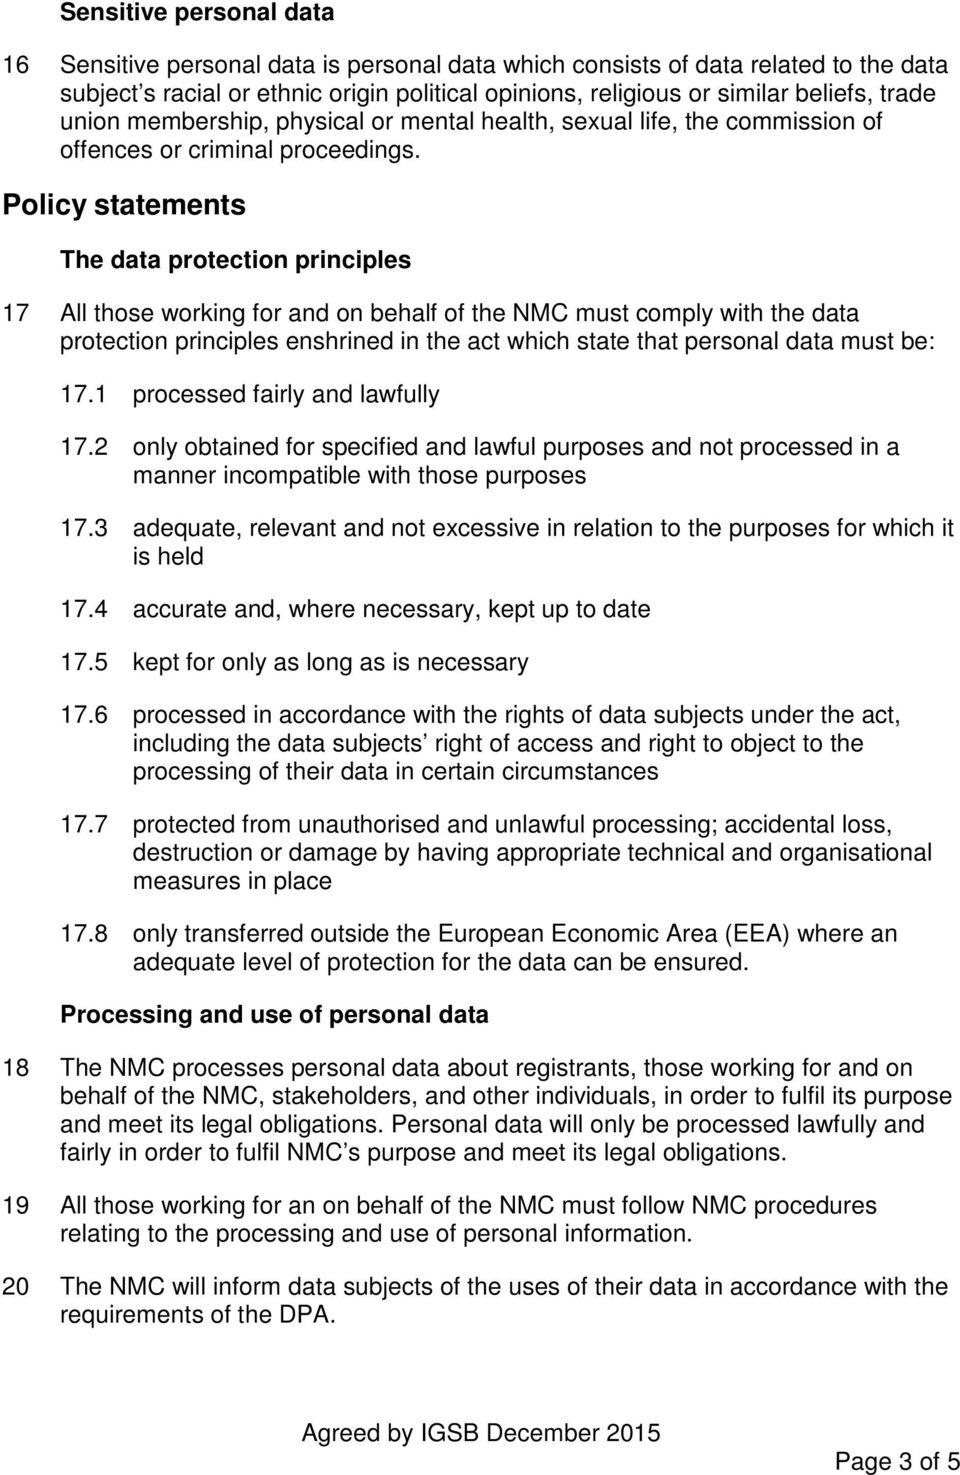 Policy statements The data protection principles 17 All those working for and on behalf of the NMC must comply with the data protection principles enshrined in the act which state that personal data